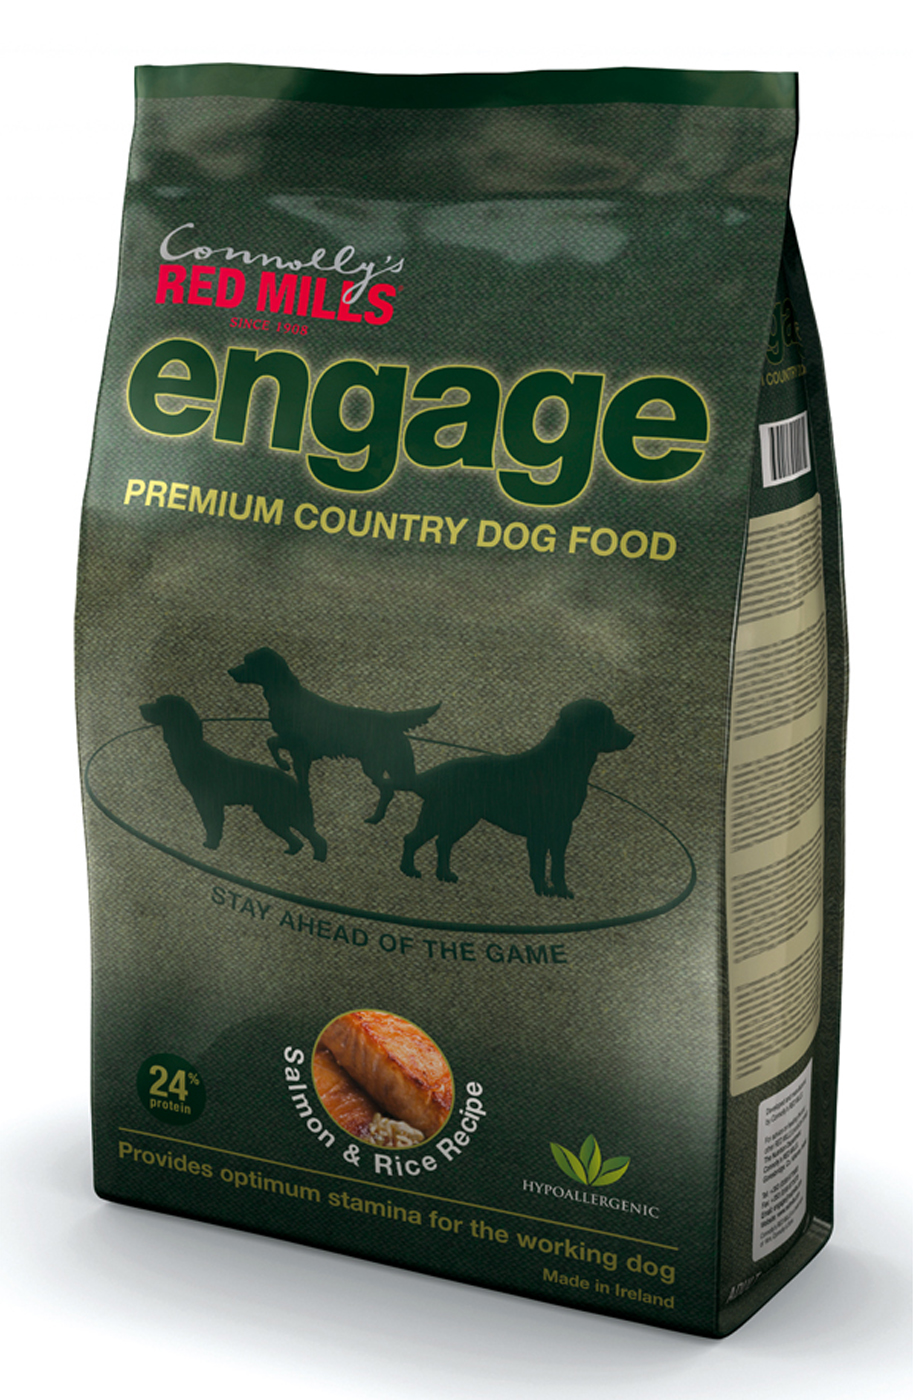 Connolly's Red Mills Engage Salmon & Rice Dog Food